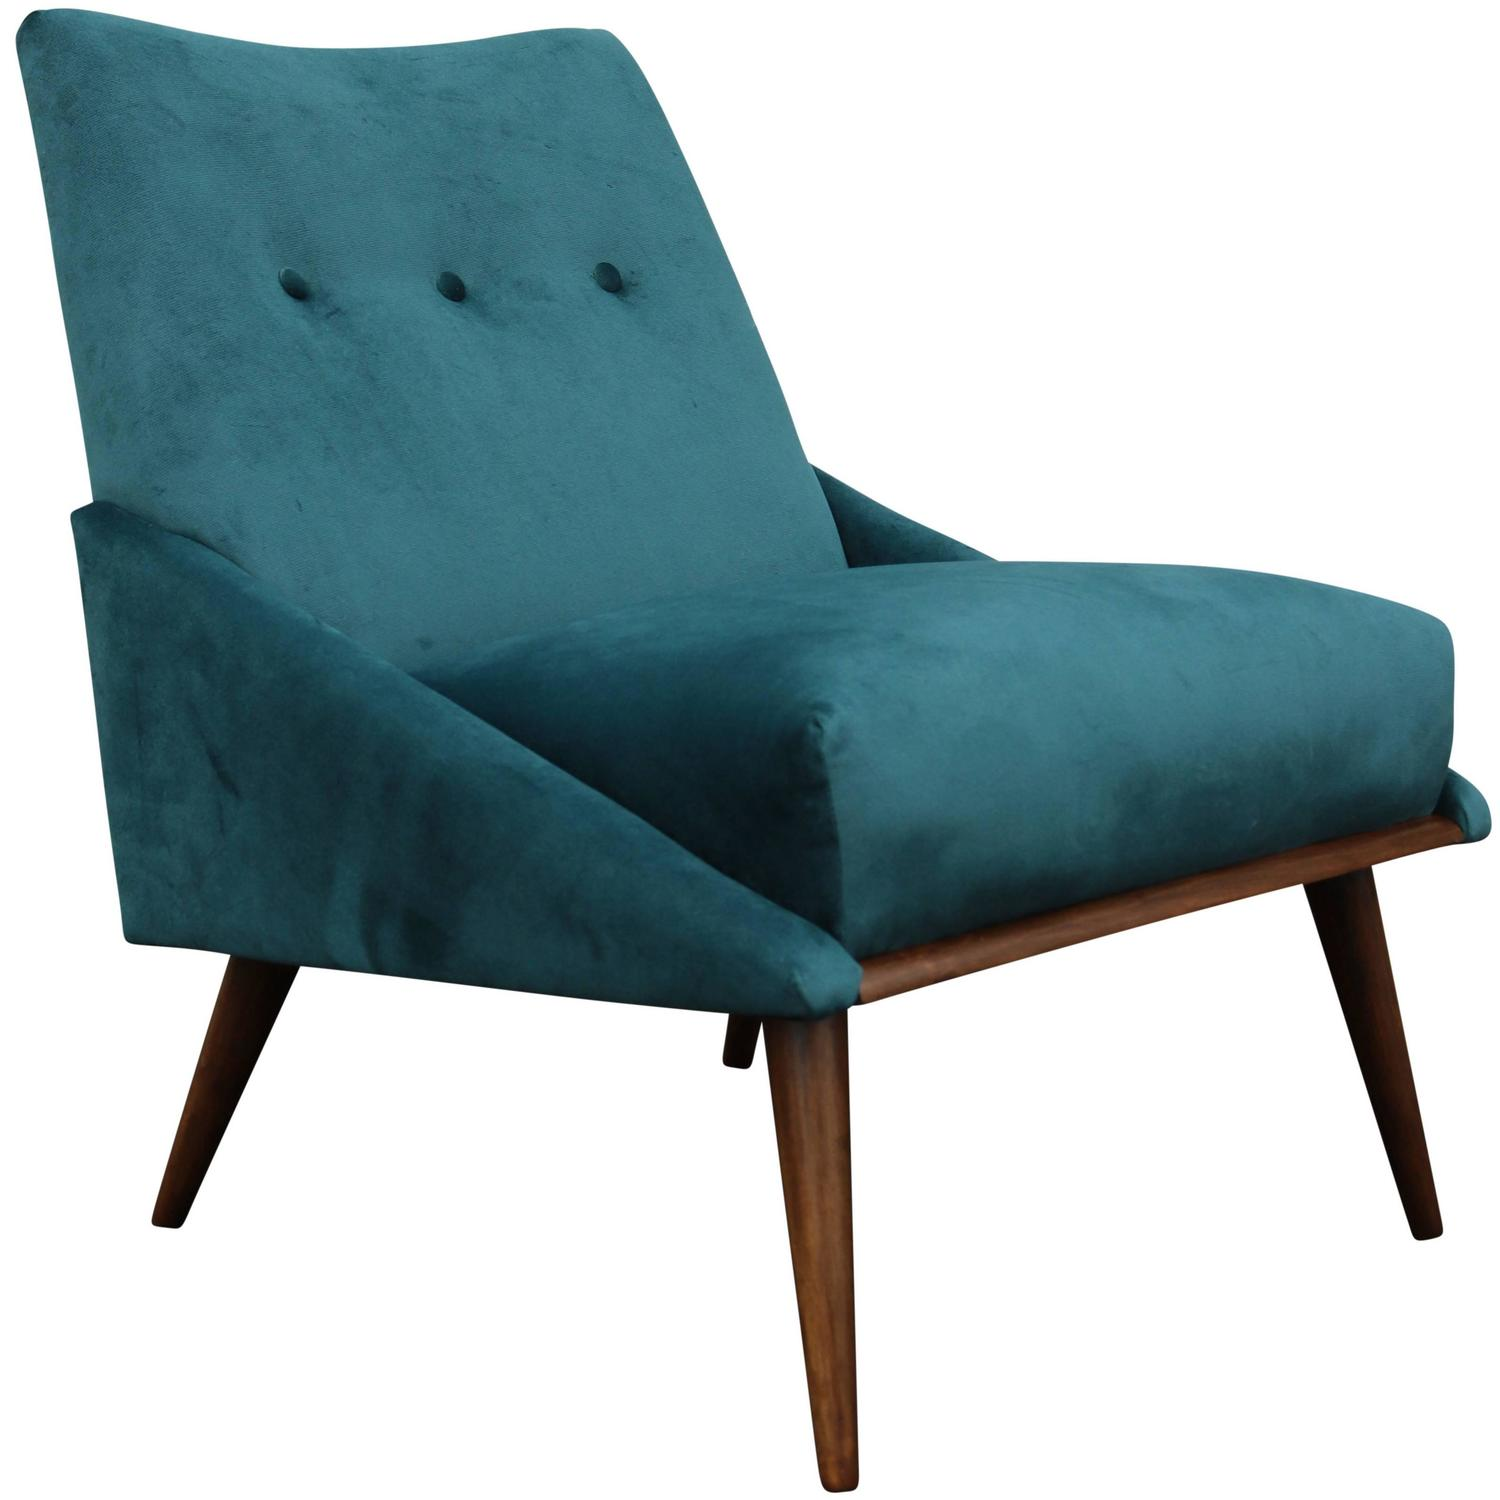 Peacock velvet mid century modern chair at 1stdibs for Mid century modern seating